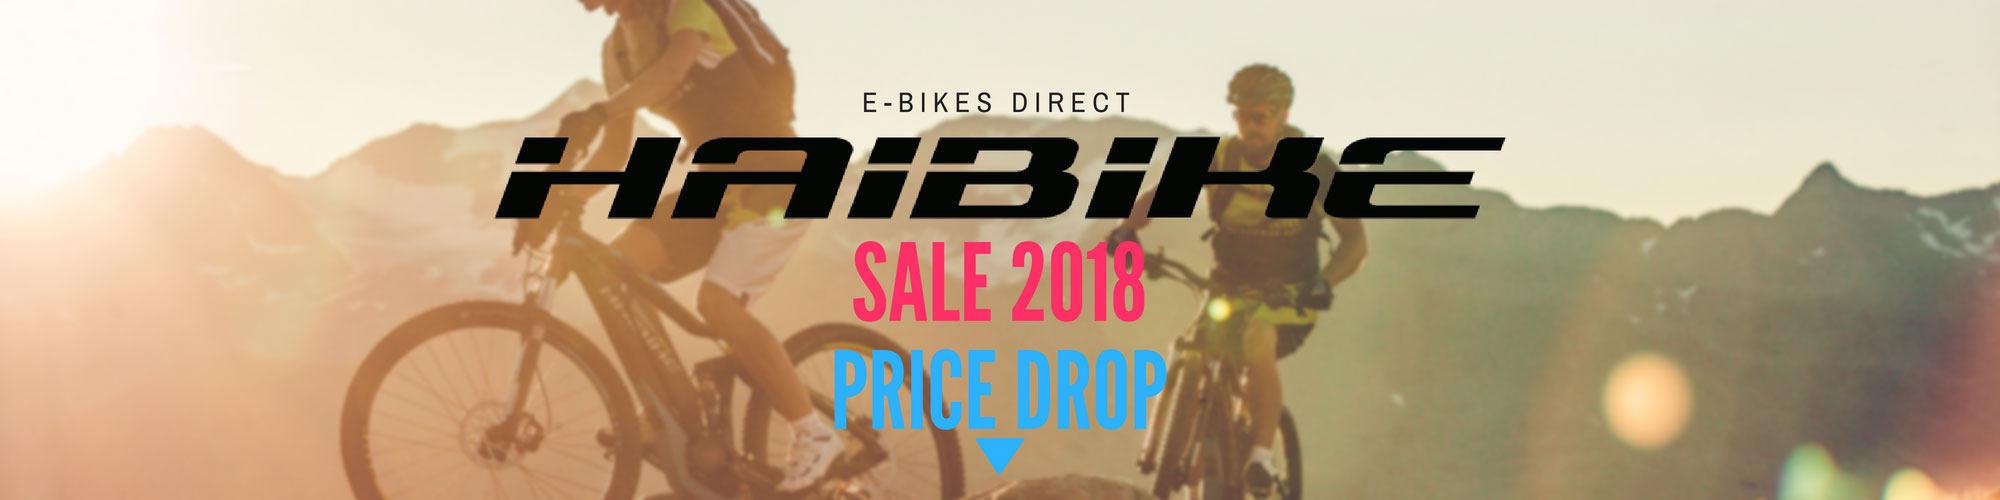 Haibike Sale 2018 - eMTB | Electric Bike | E-Bikes | Electric Bikes